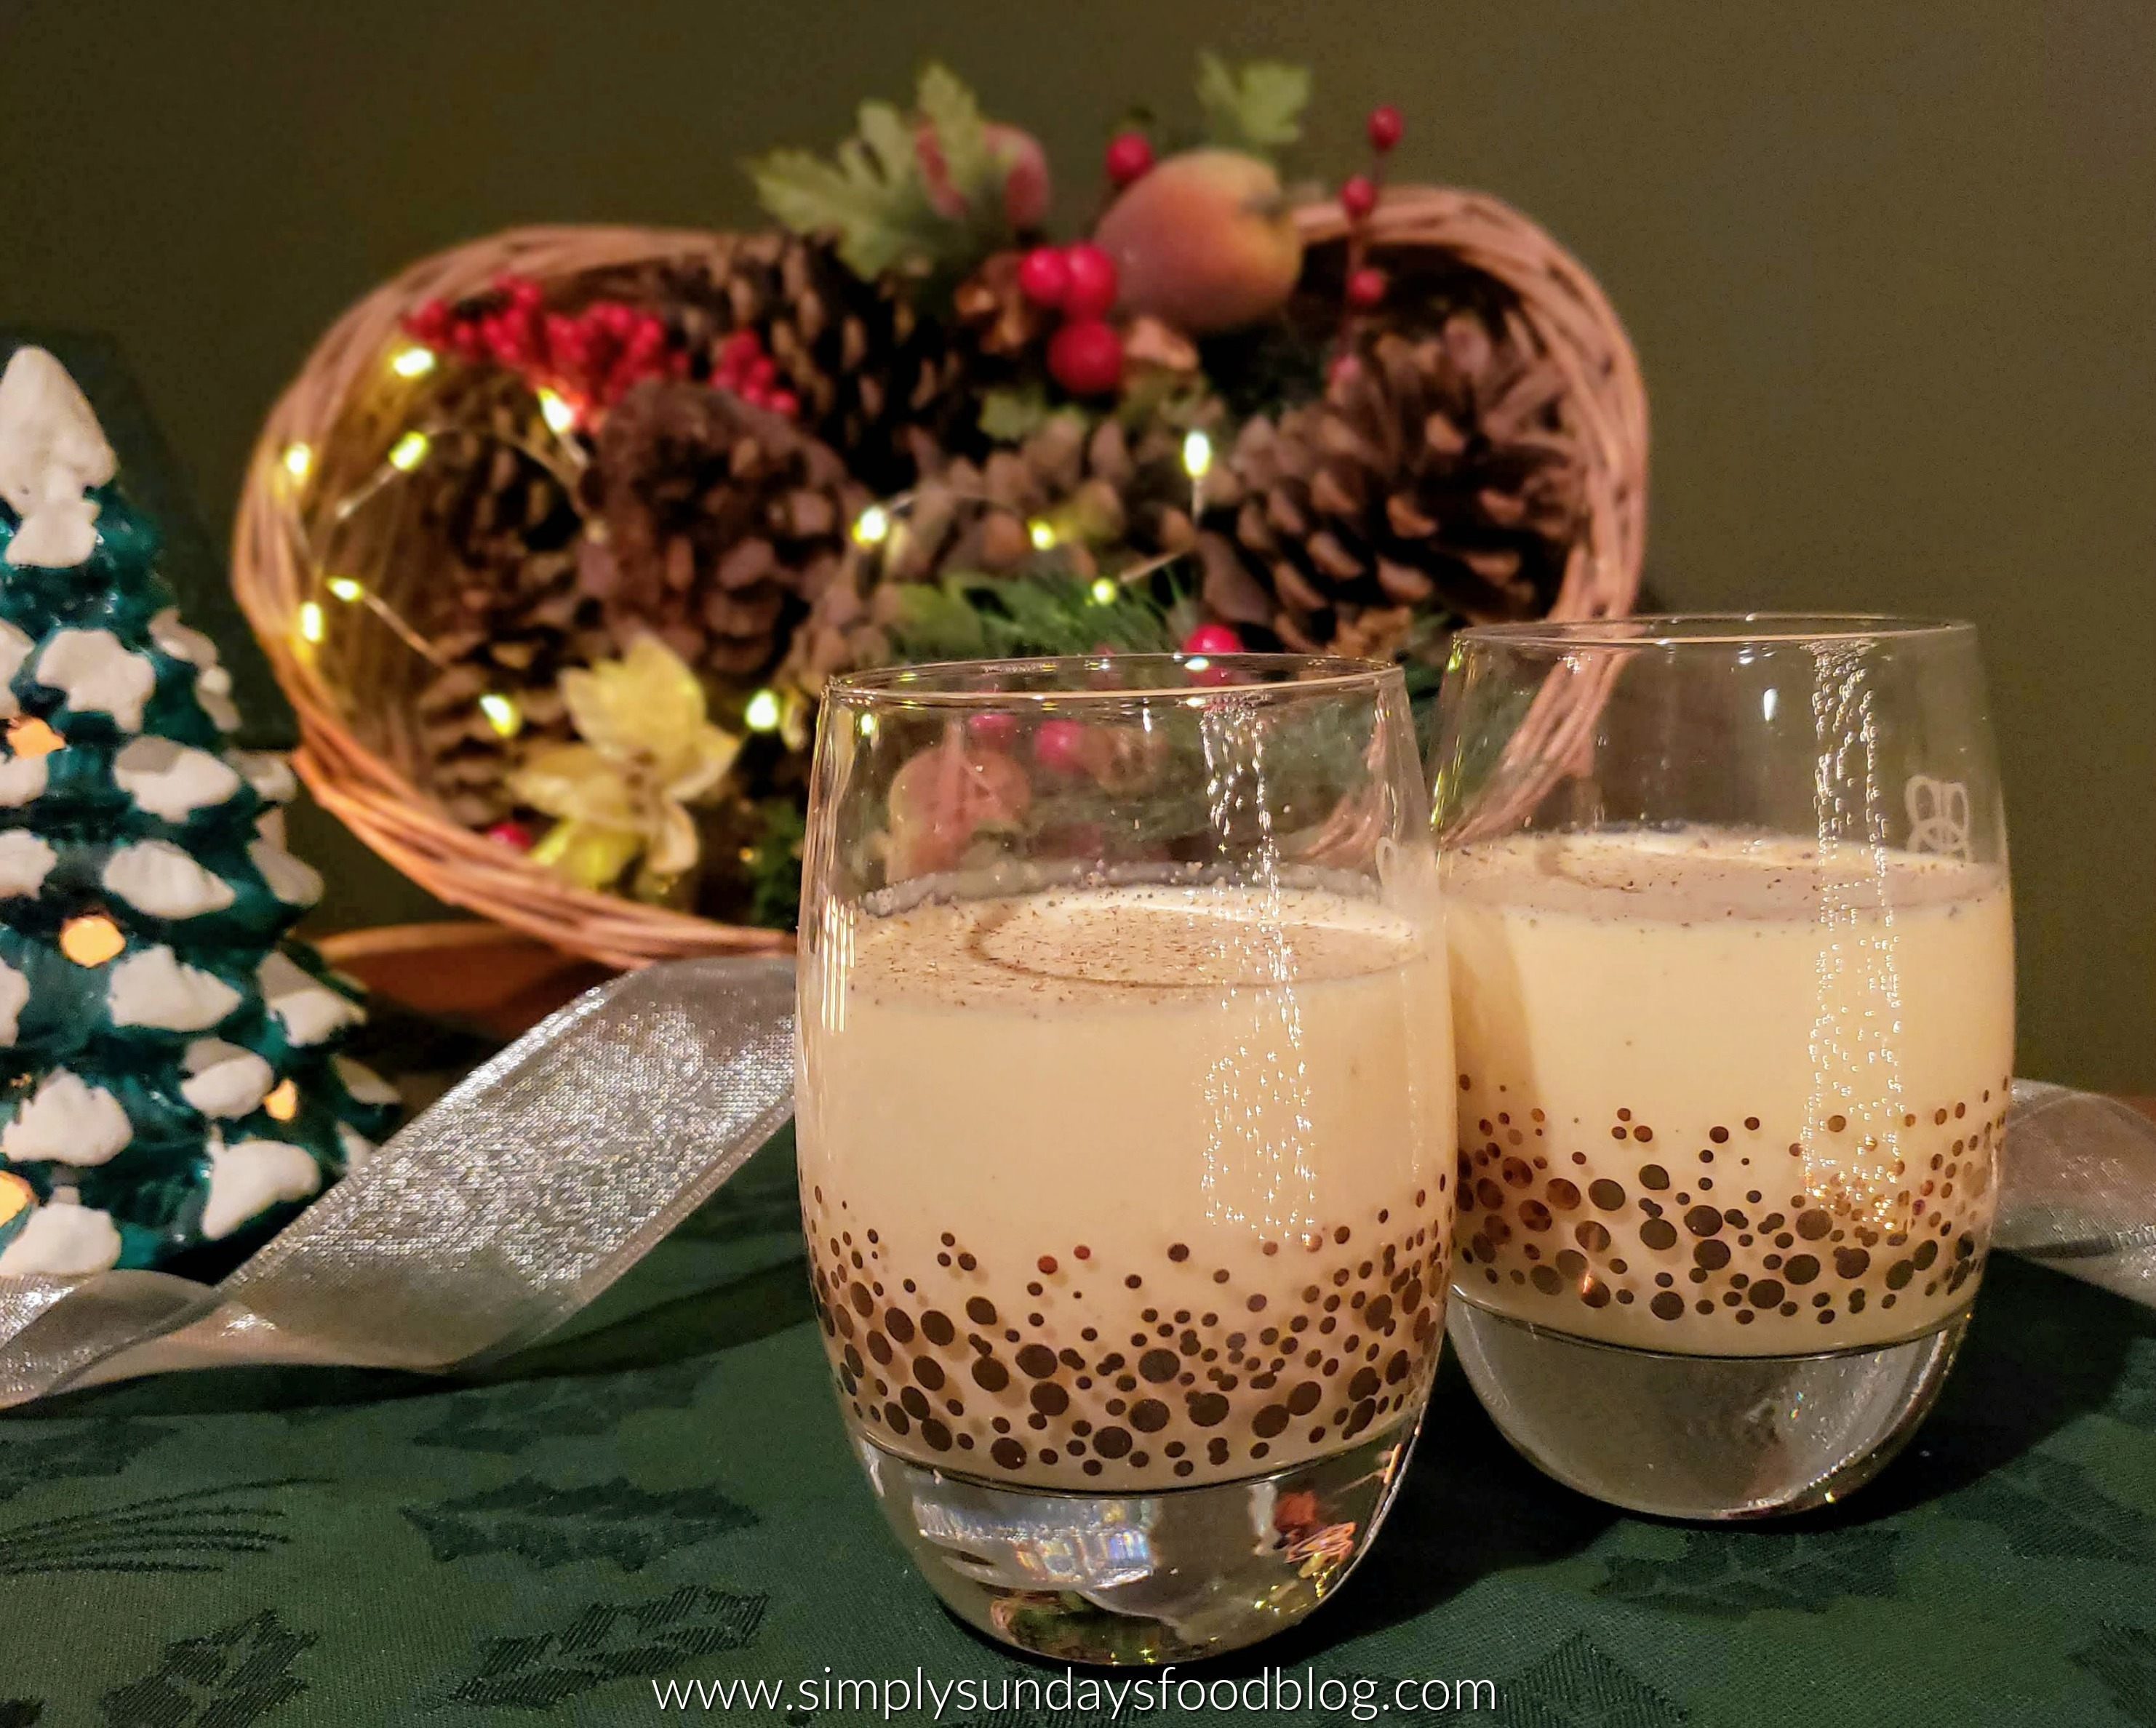 Two glasses of spiked eggnog on a green cloth with sparkling lights, pine cones and small Christmas decor in a basket in the background